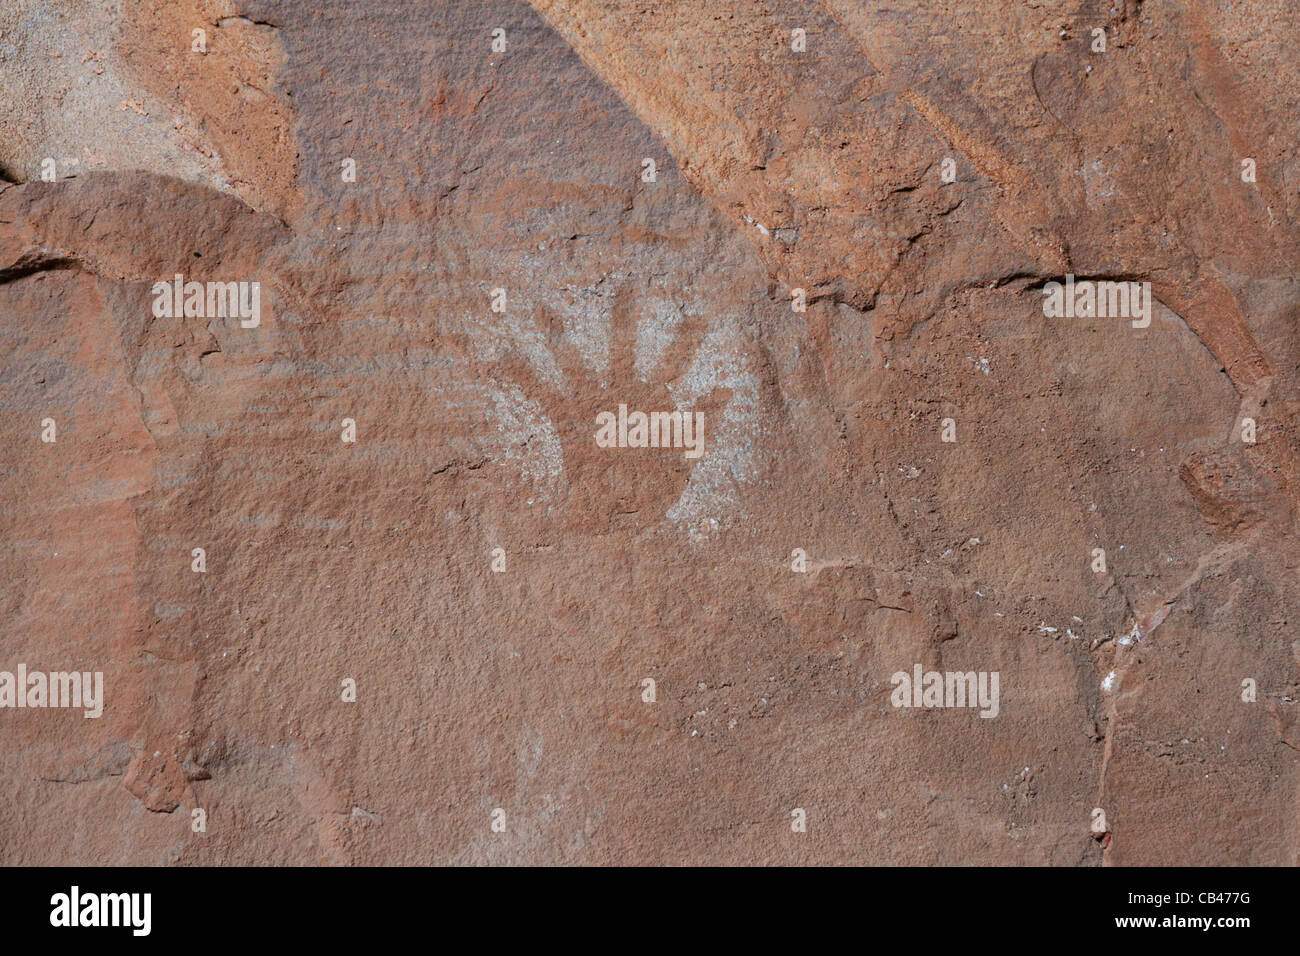 pictograph of hand on red sandstone cliff - Stock Image